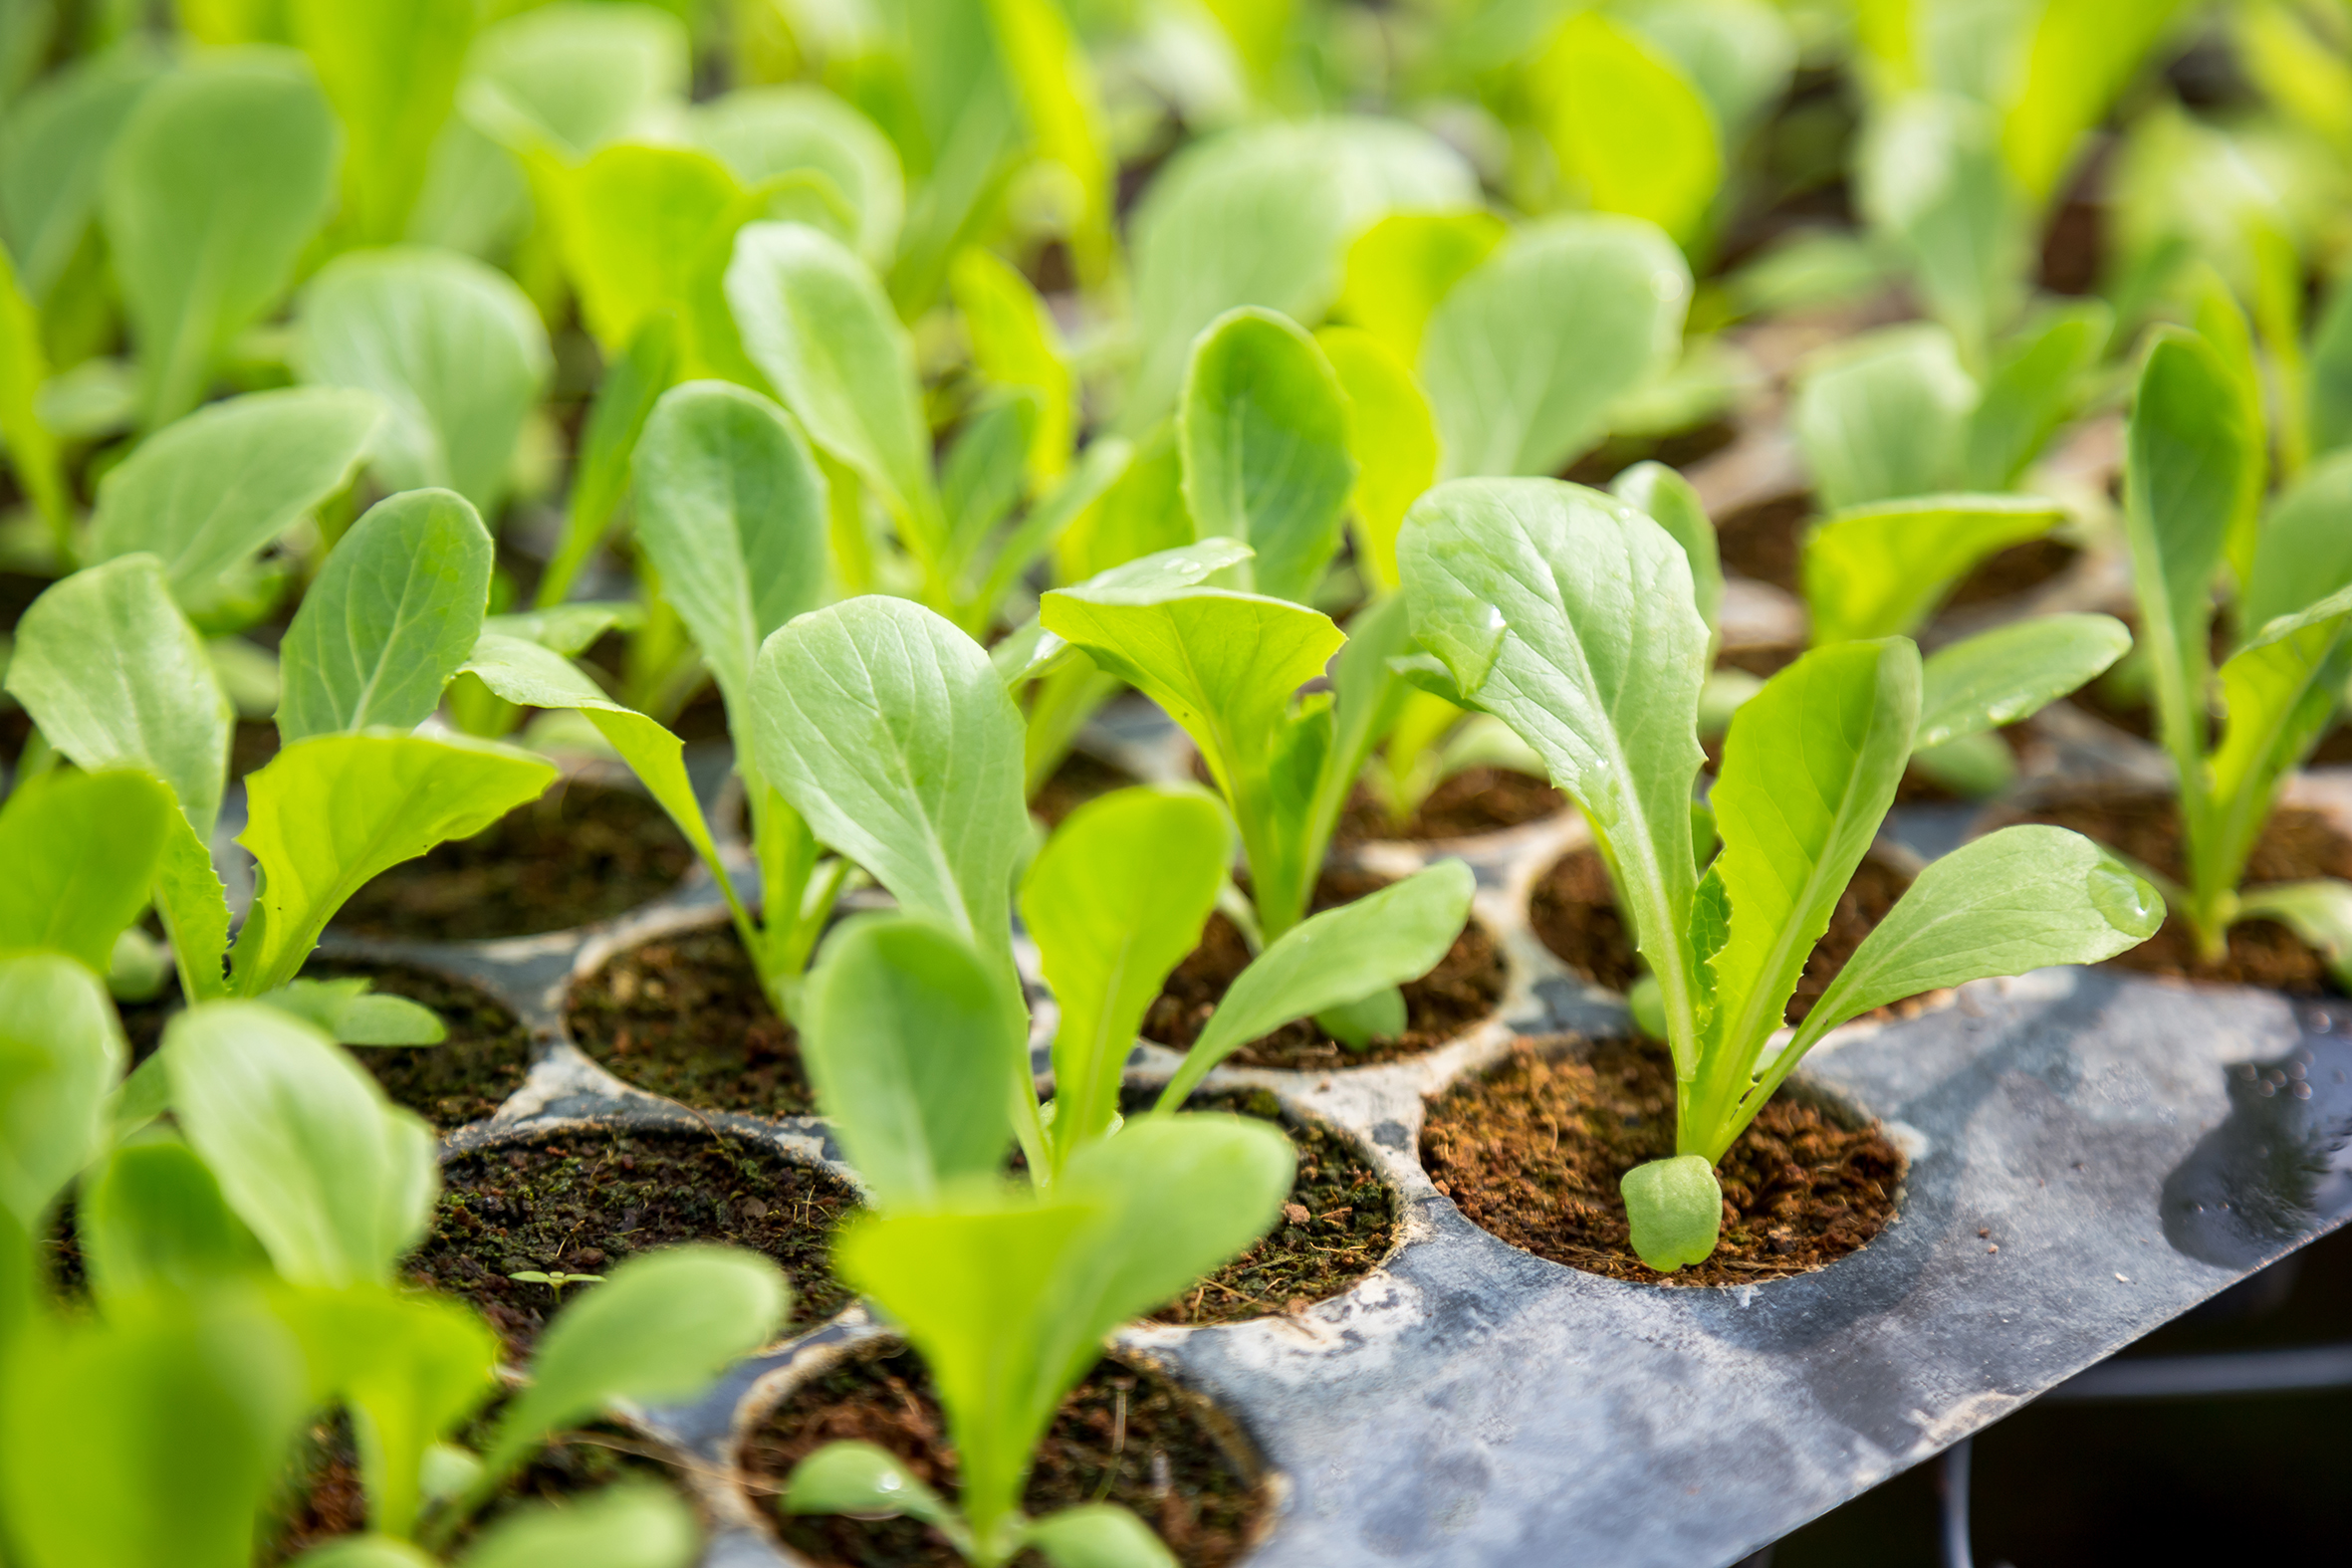 Vegetable seedlings are planted in pots, organic.